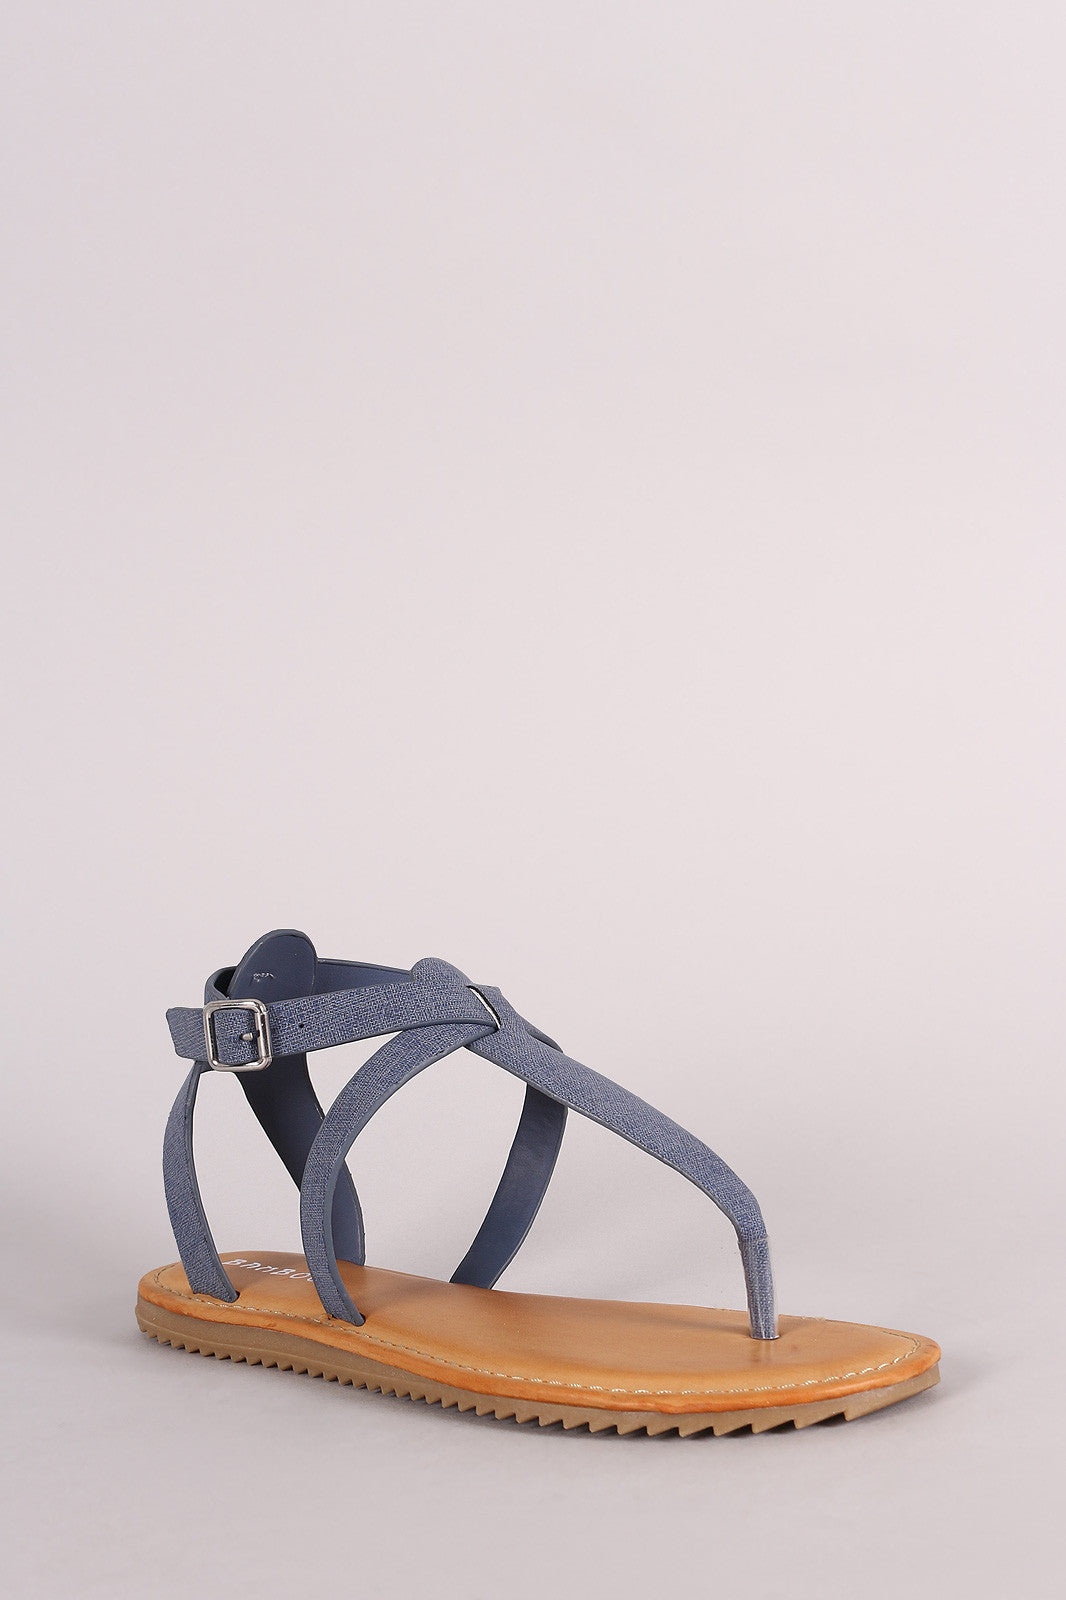 Bamboo Nubuck Lug Sole Crisscross Ankle Strap Thong Flat Sandal - Thick 'N' Curvy Shop - 7